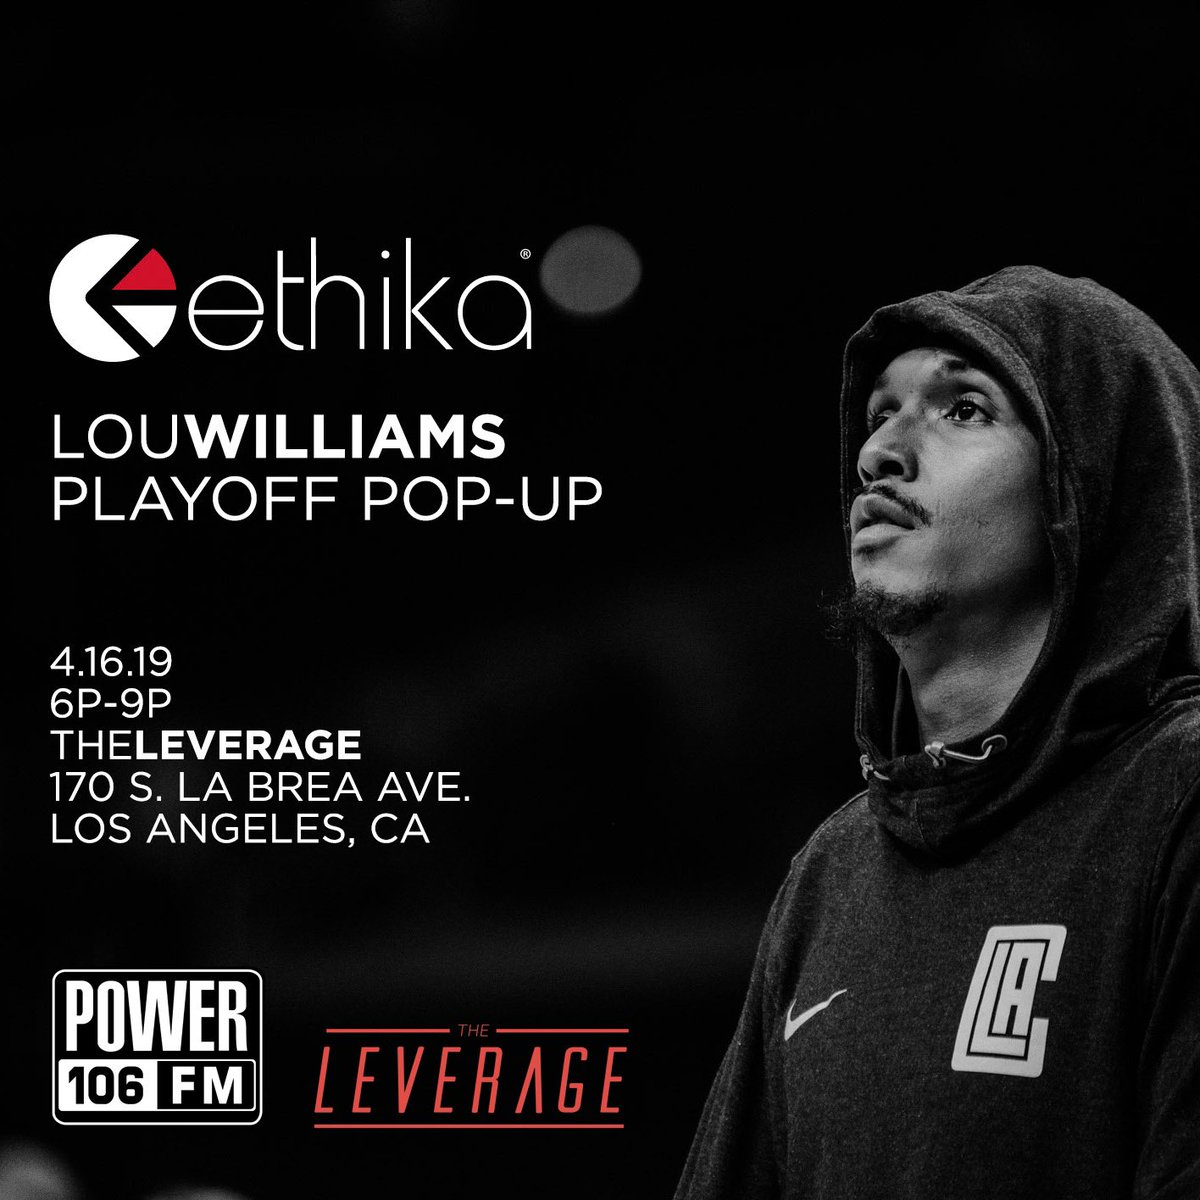 Pull up TONIGHT 6-9P‼️ @TeamLou23 at The Leverage LA for his #LilLou X @ethika @LAClippers #Playoff Merch pop up shop + Meet & greet! 🙌🏽